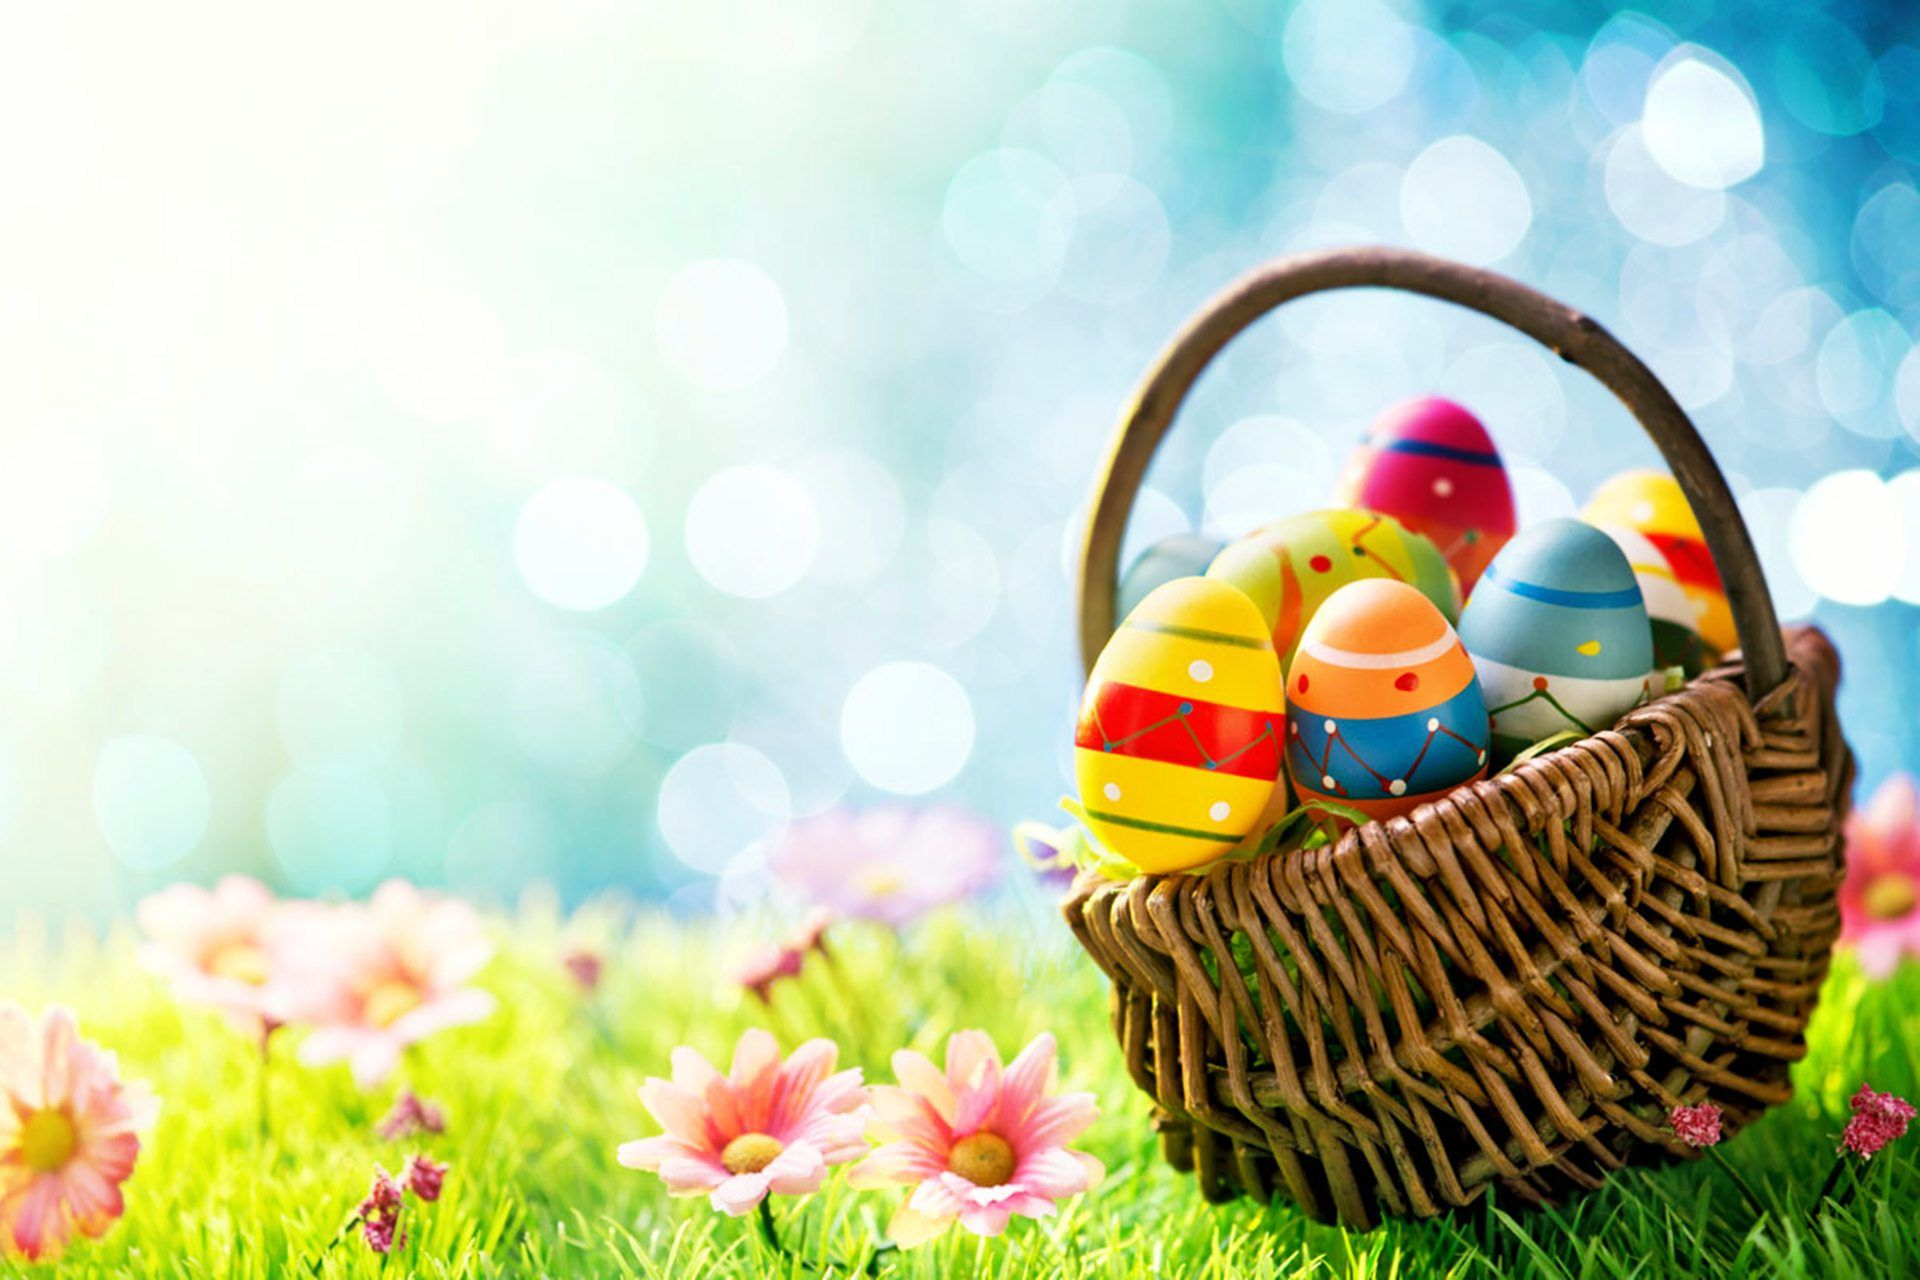 Easter Wallpapers Hd Download Free Colletion Easter Wallpaper Happy Easter Wallpaper Creative Easter Baskets